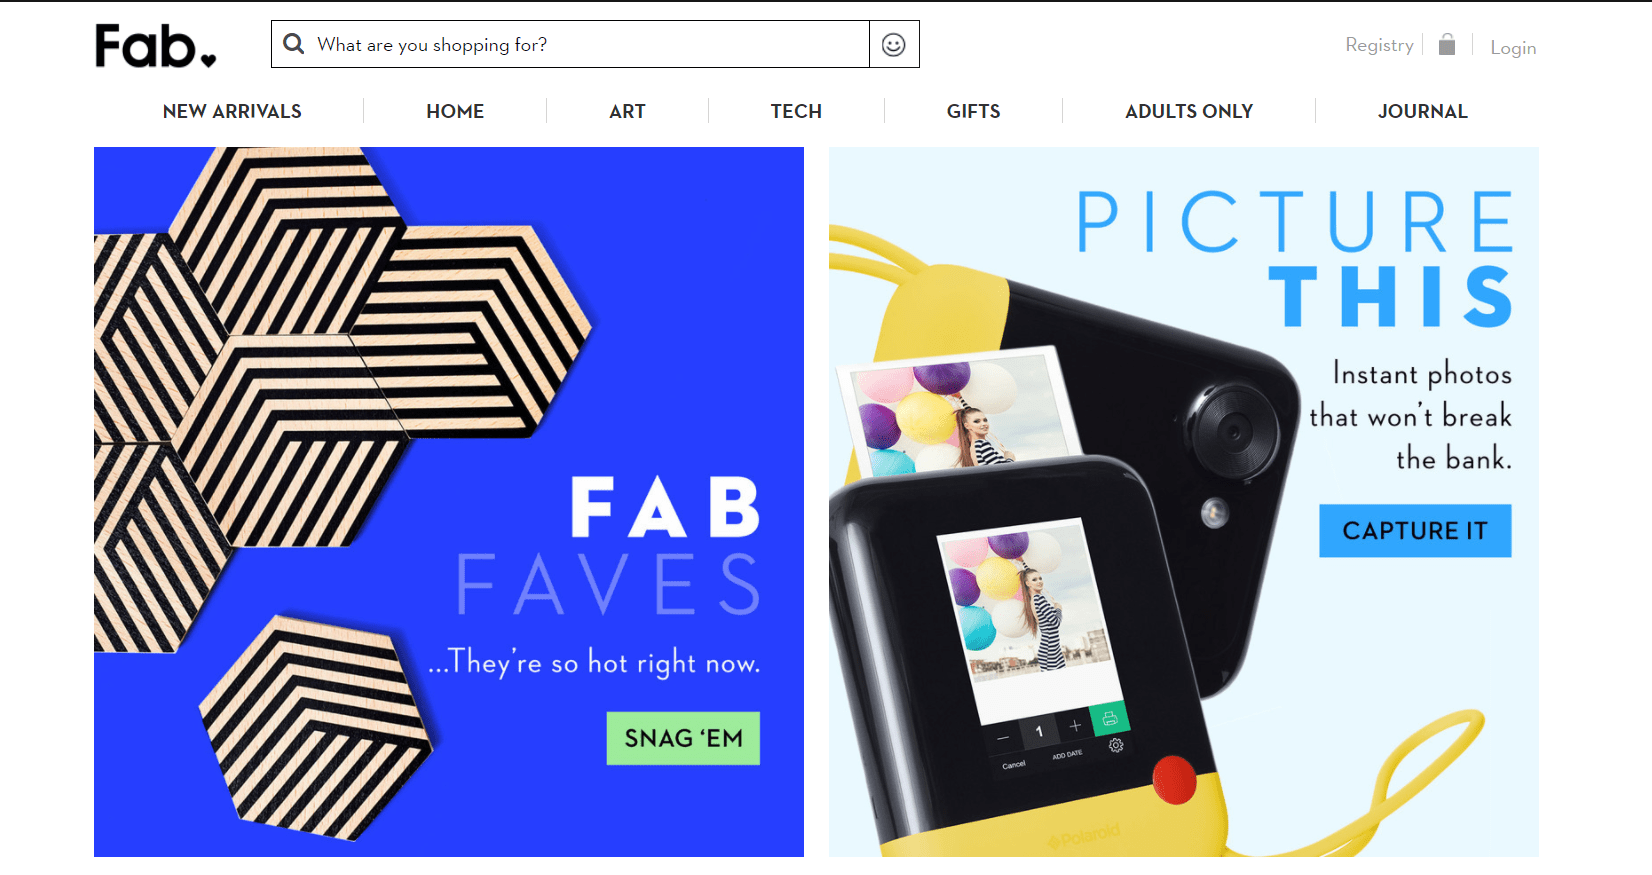 Fab.com was developed using Ruby on Rails